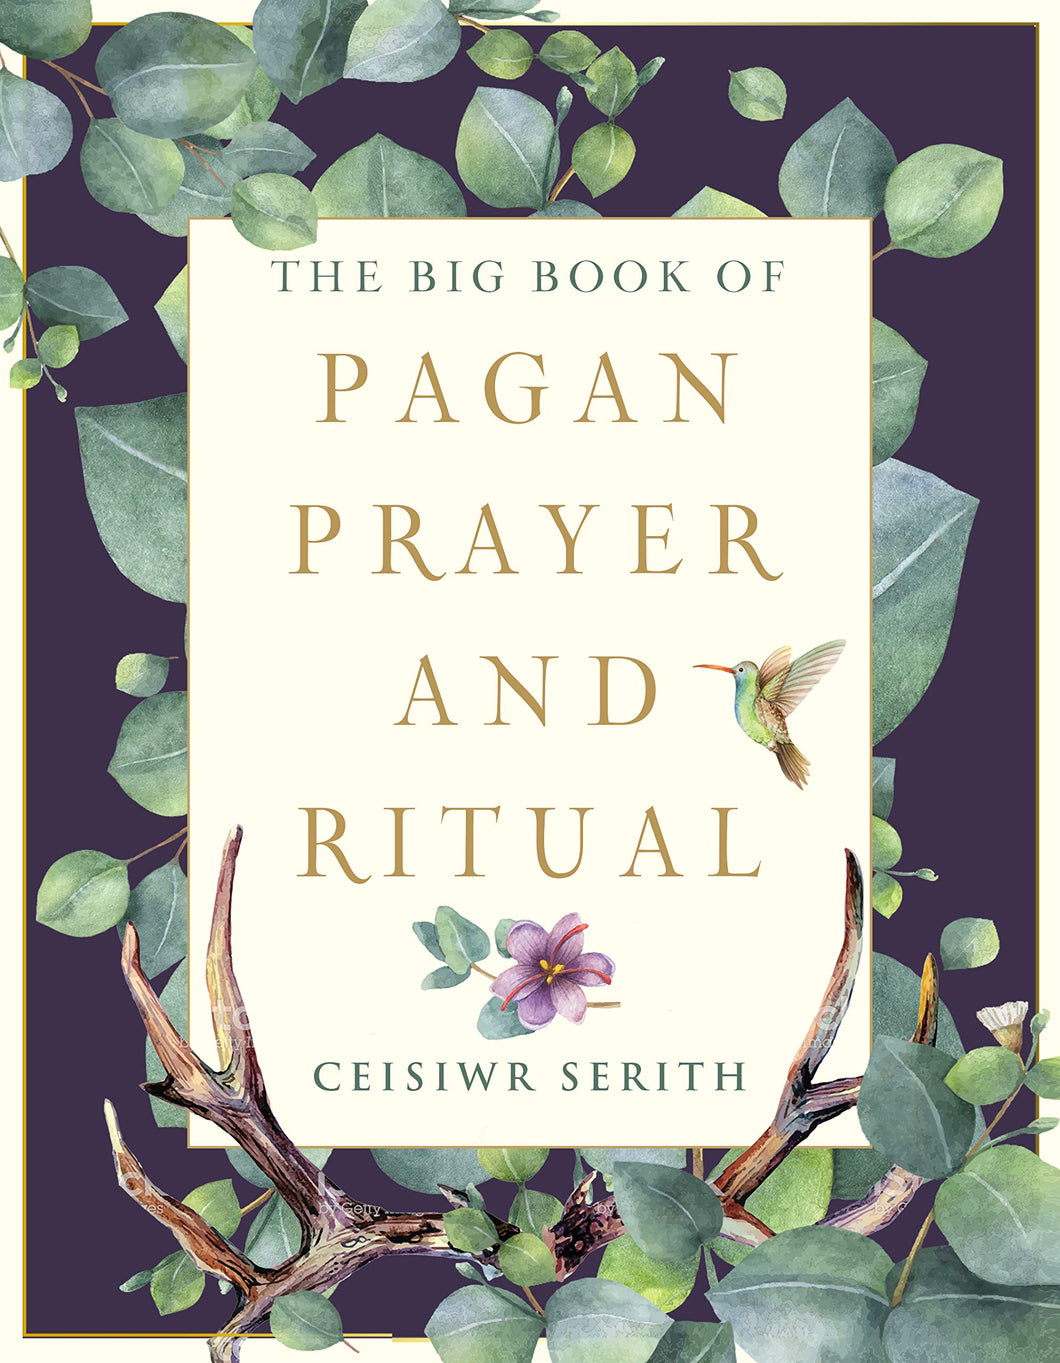 The Big Book of Pagan Prayer and Ritual (Ceisiwr Serith)